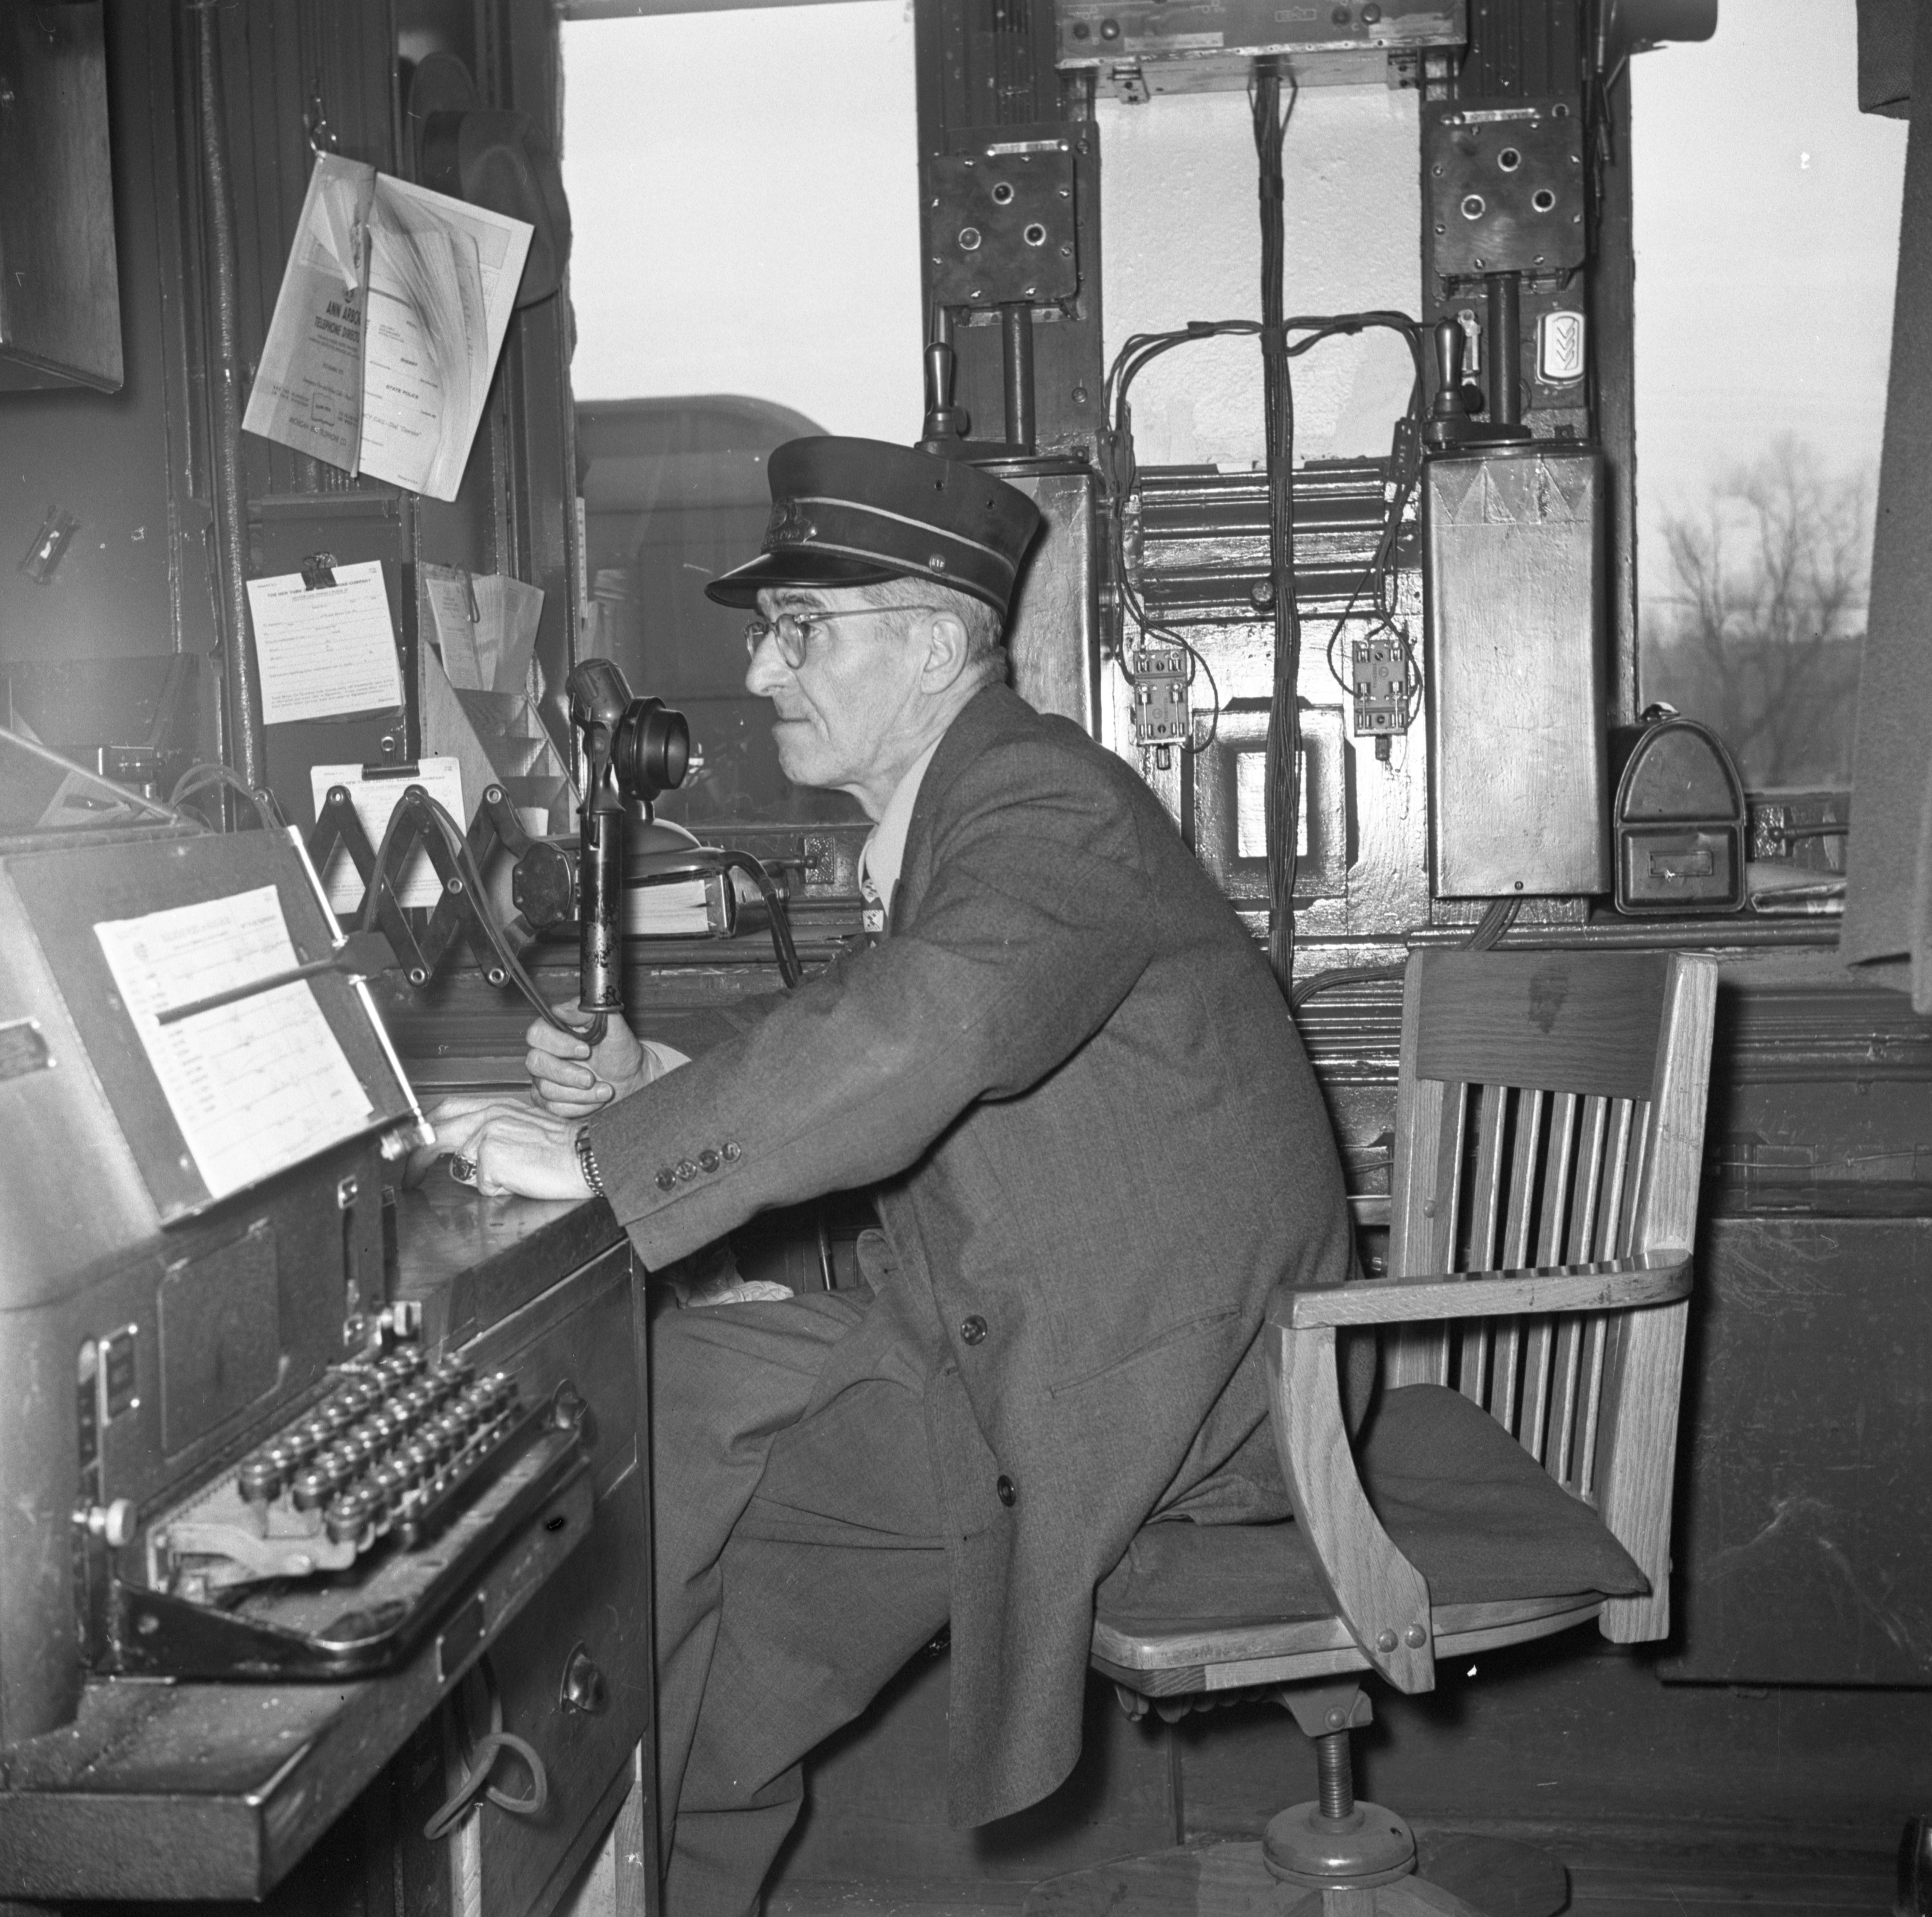 P. H. Moss - New York Central Railroad Telegrapher, January 1952 image